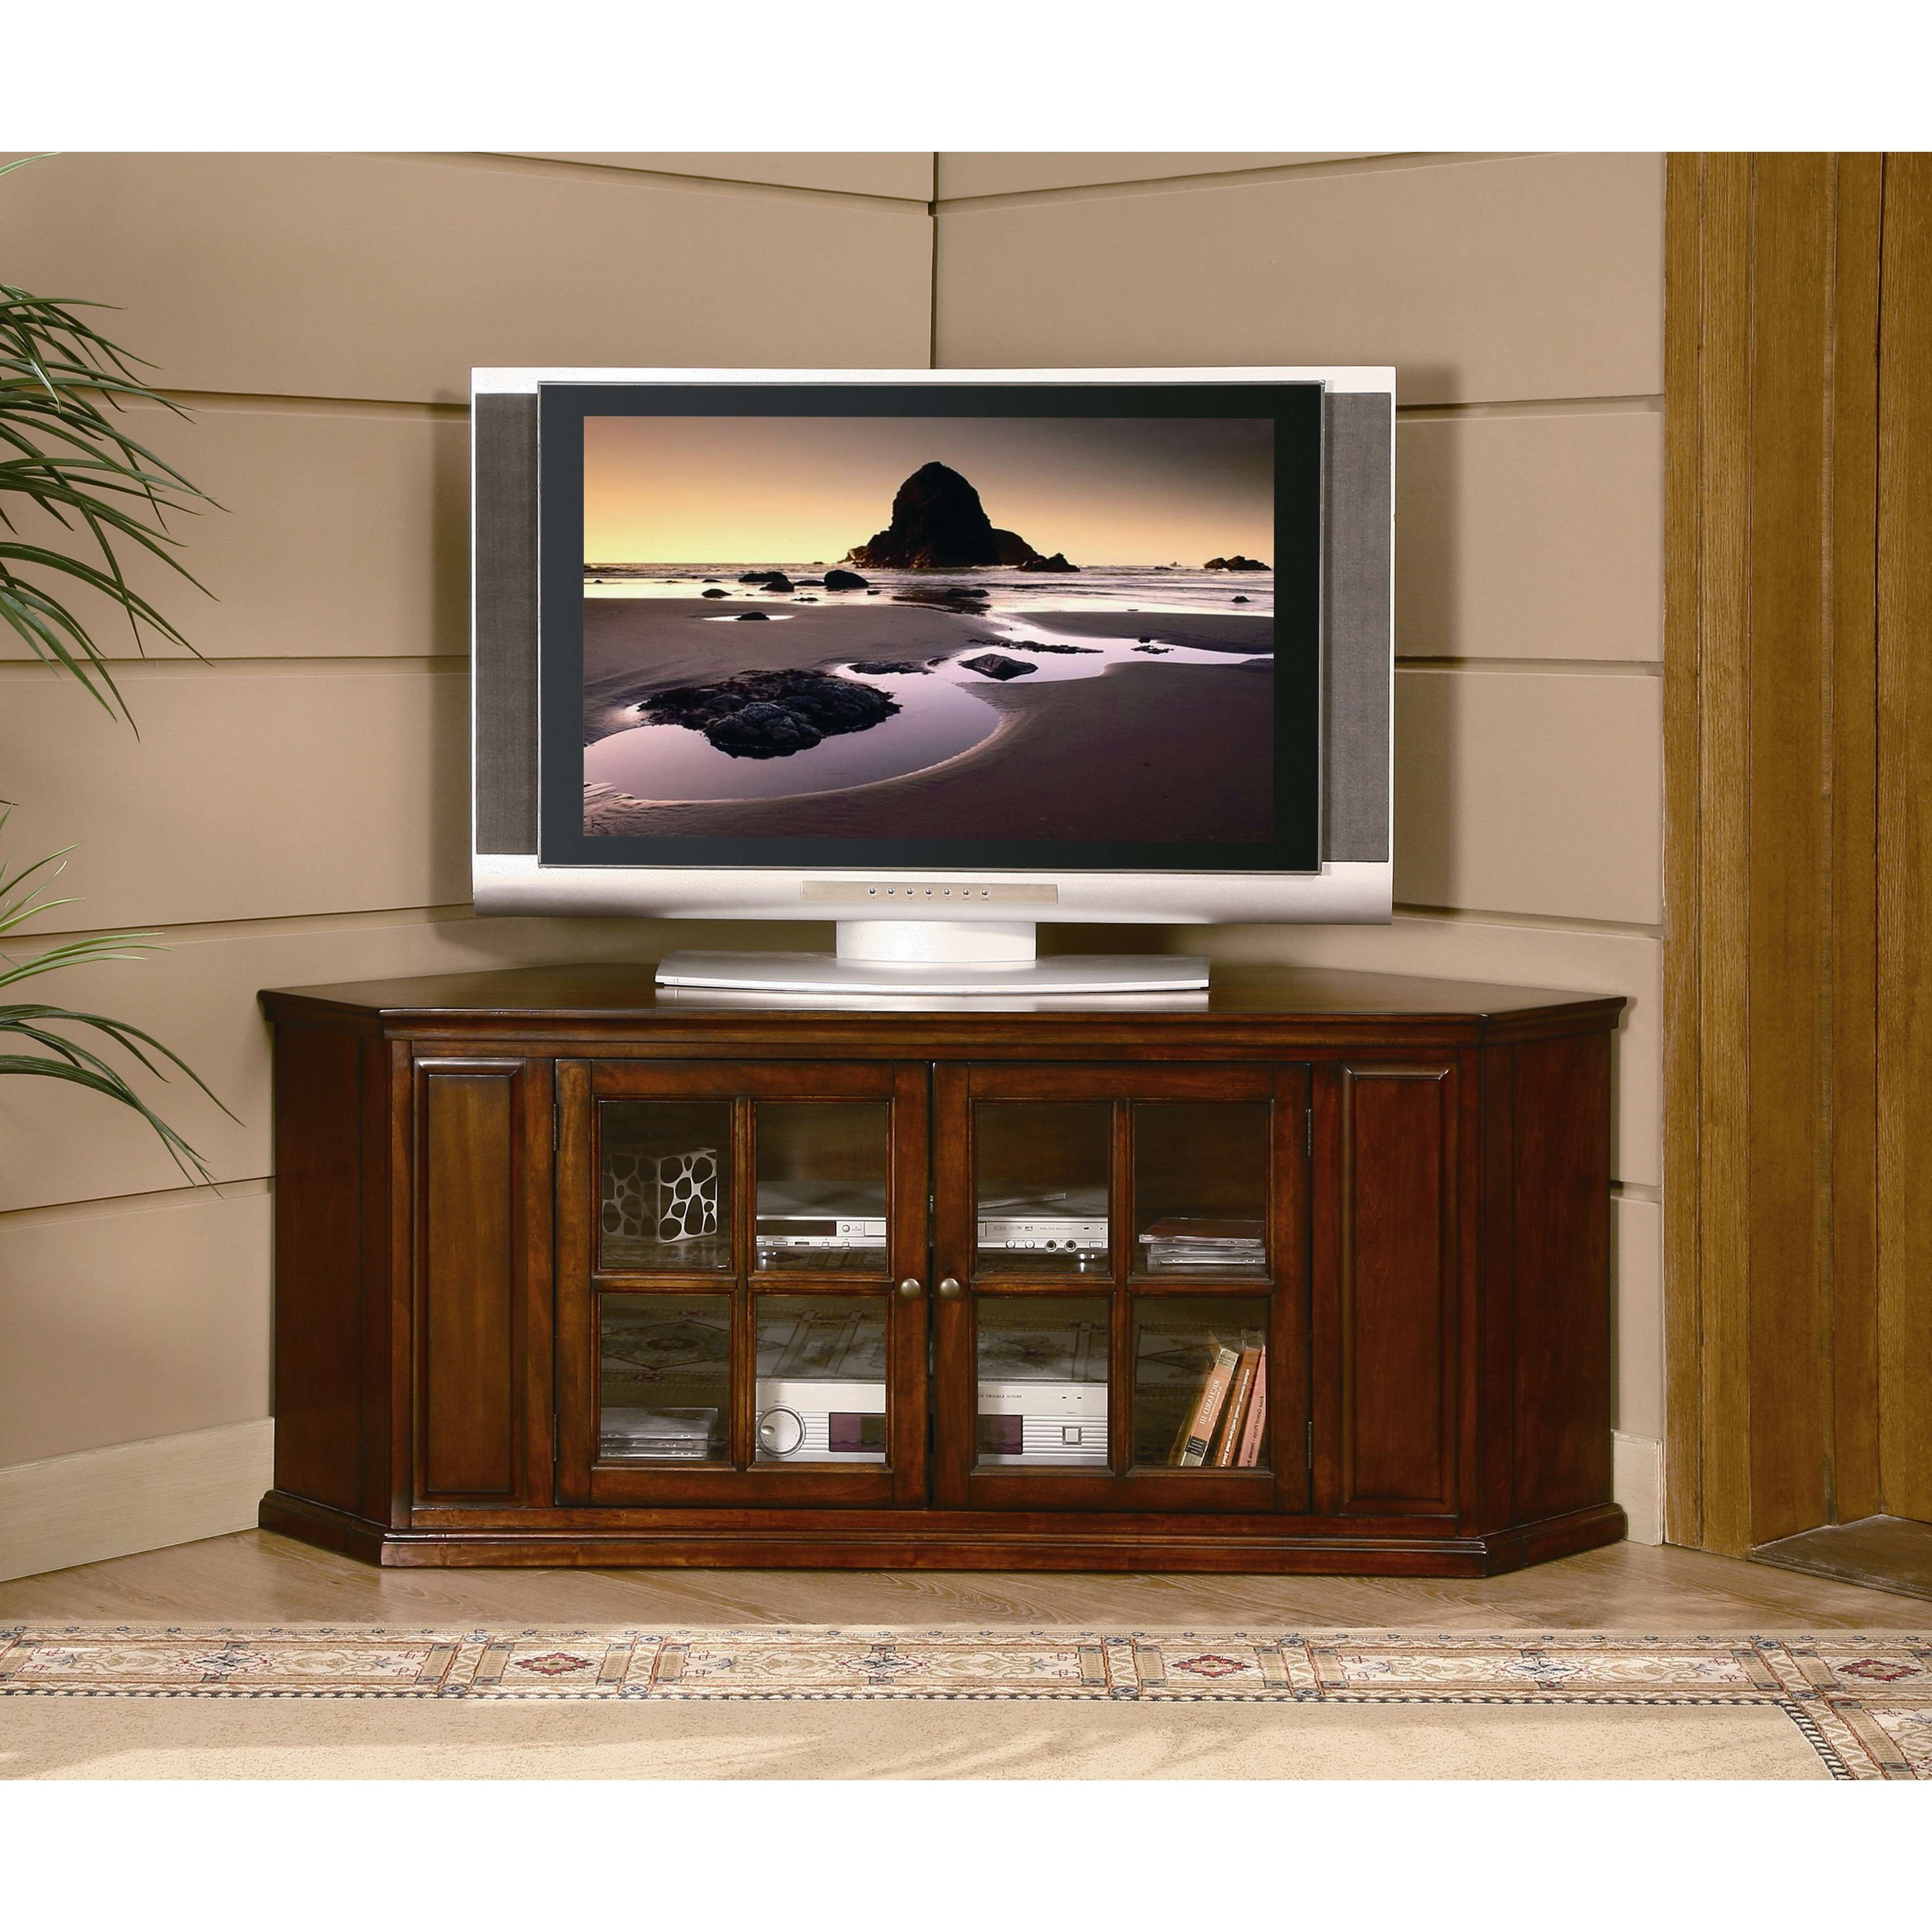 Tv Stand : South Shore Renta Corner Tv Stand For Tvs Up To Pertaining To Corner Tv Stands For 50 Inch Tv (View 19 of 20)